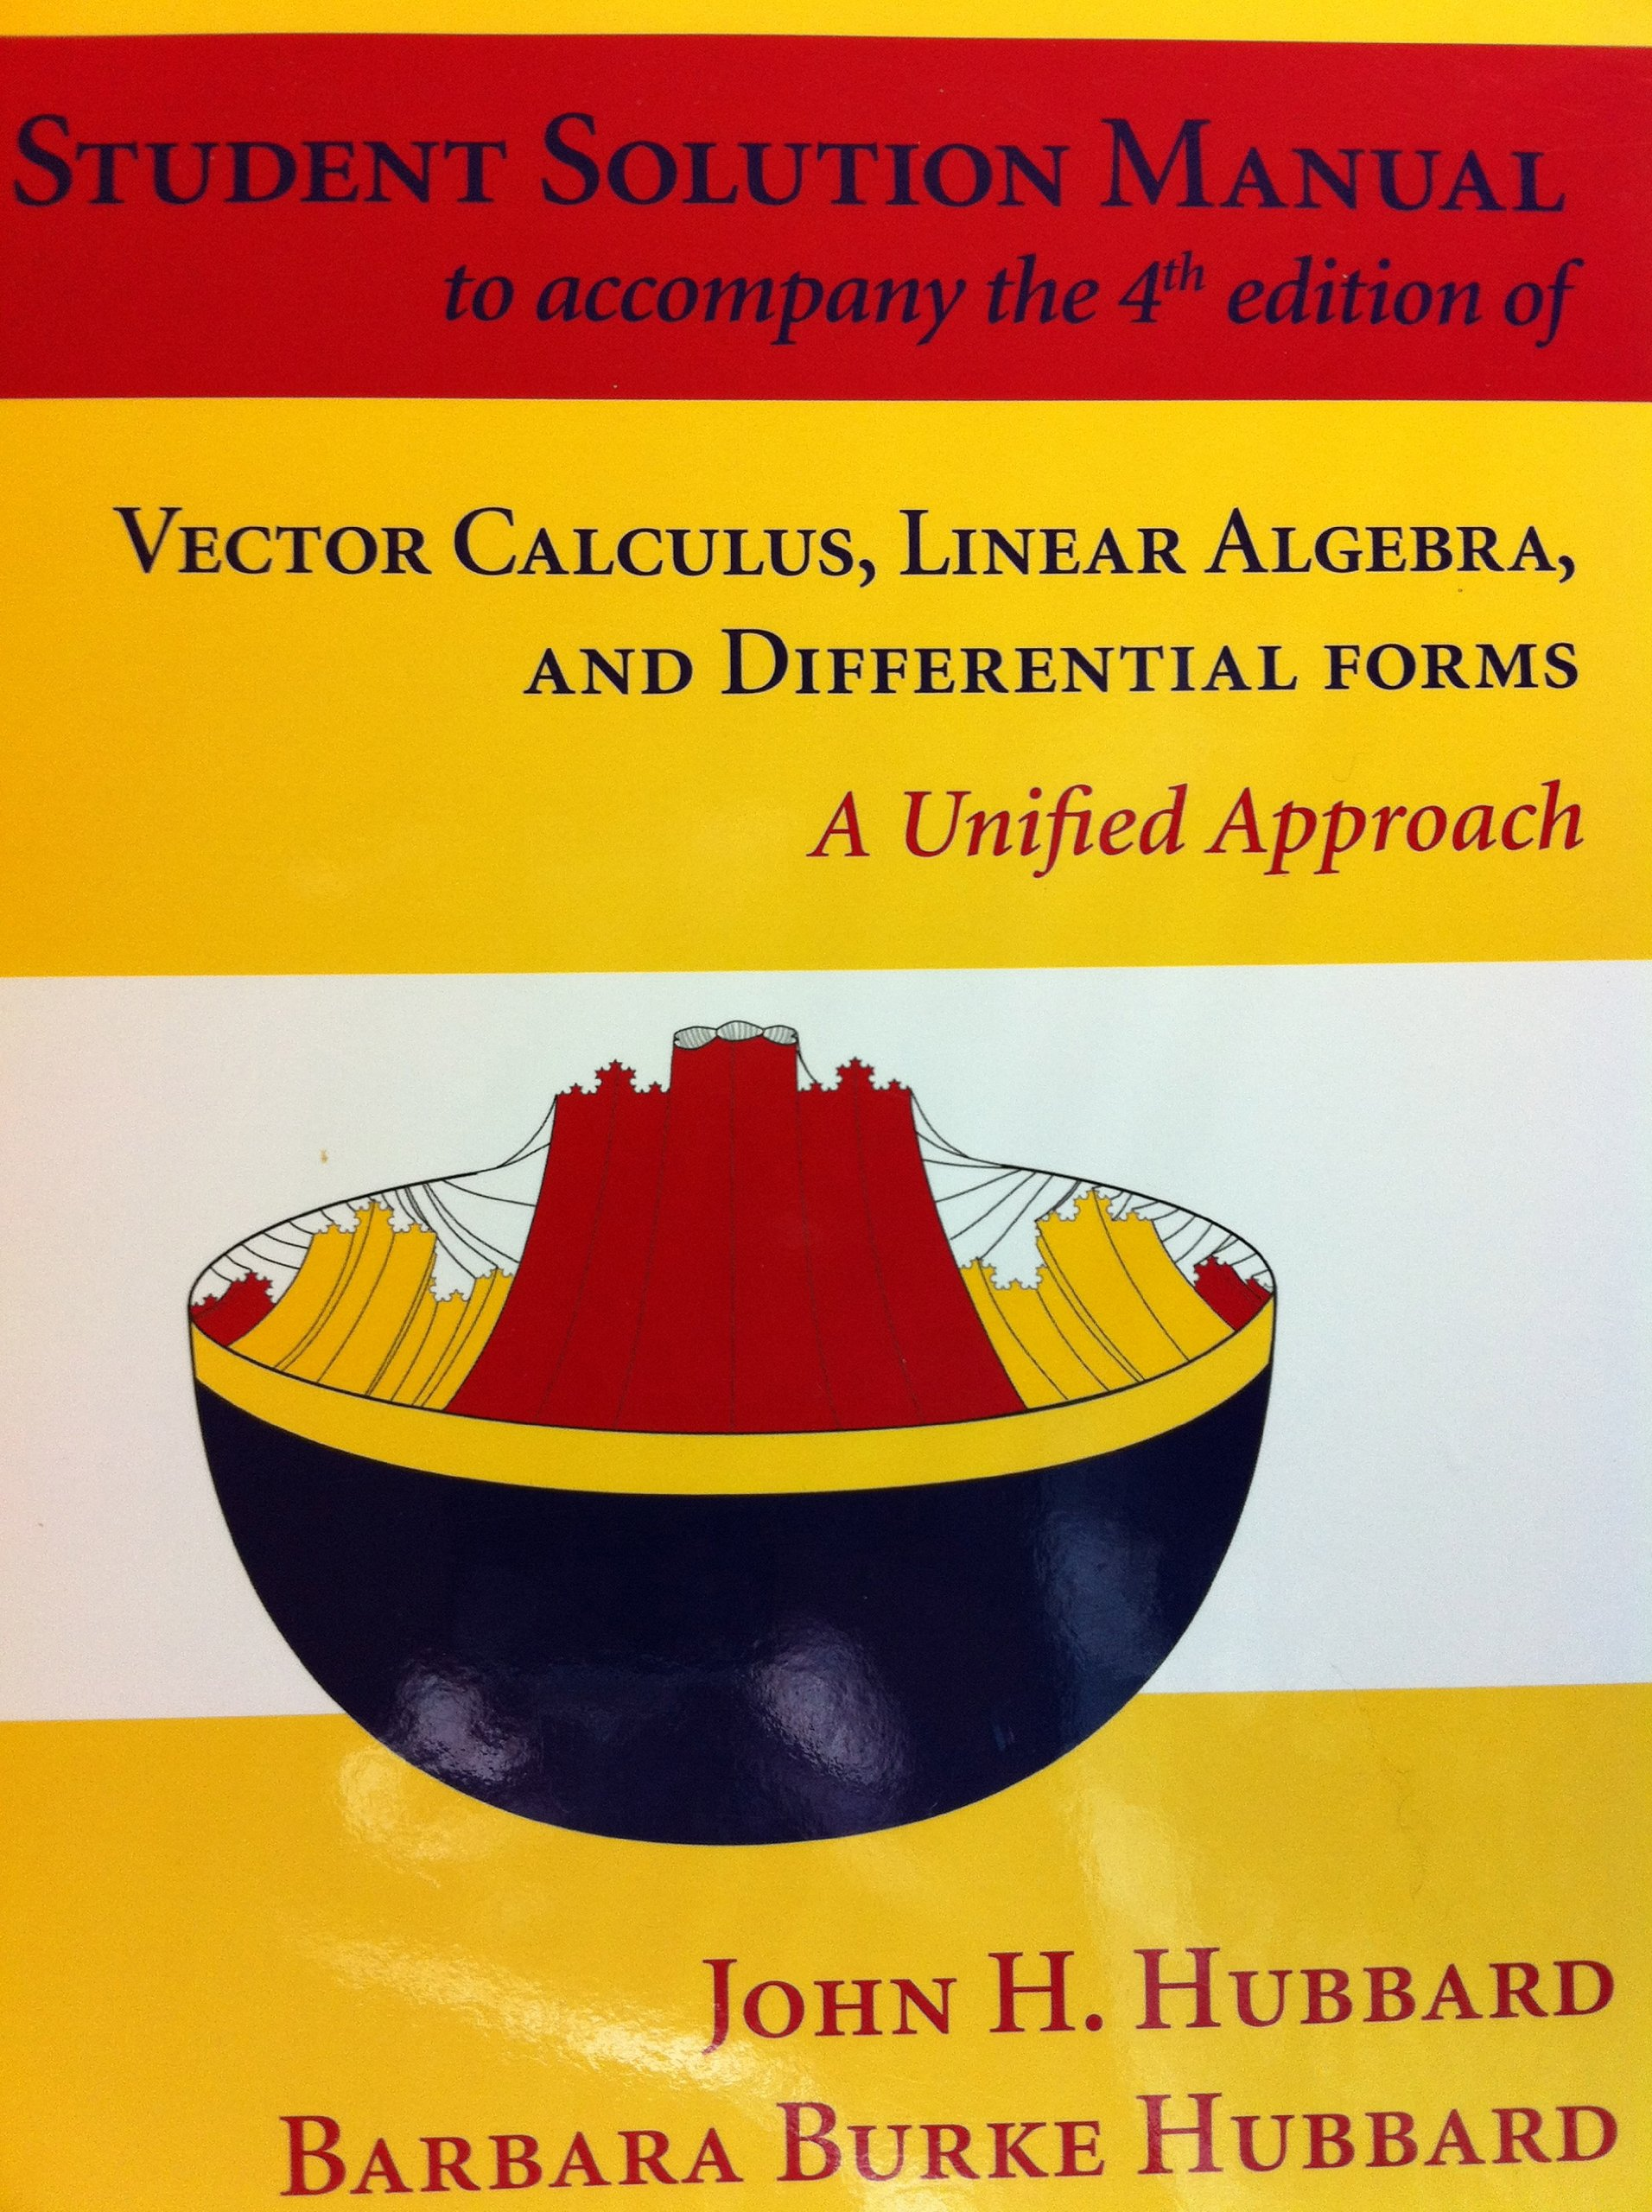 Student Solution Manual to accompany 4th edition of Vector Calculus, Linear  Algebra, and Differentia: Amazon.co.uk: John H. Hubbard: 9780971576674:  Books